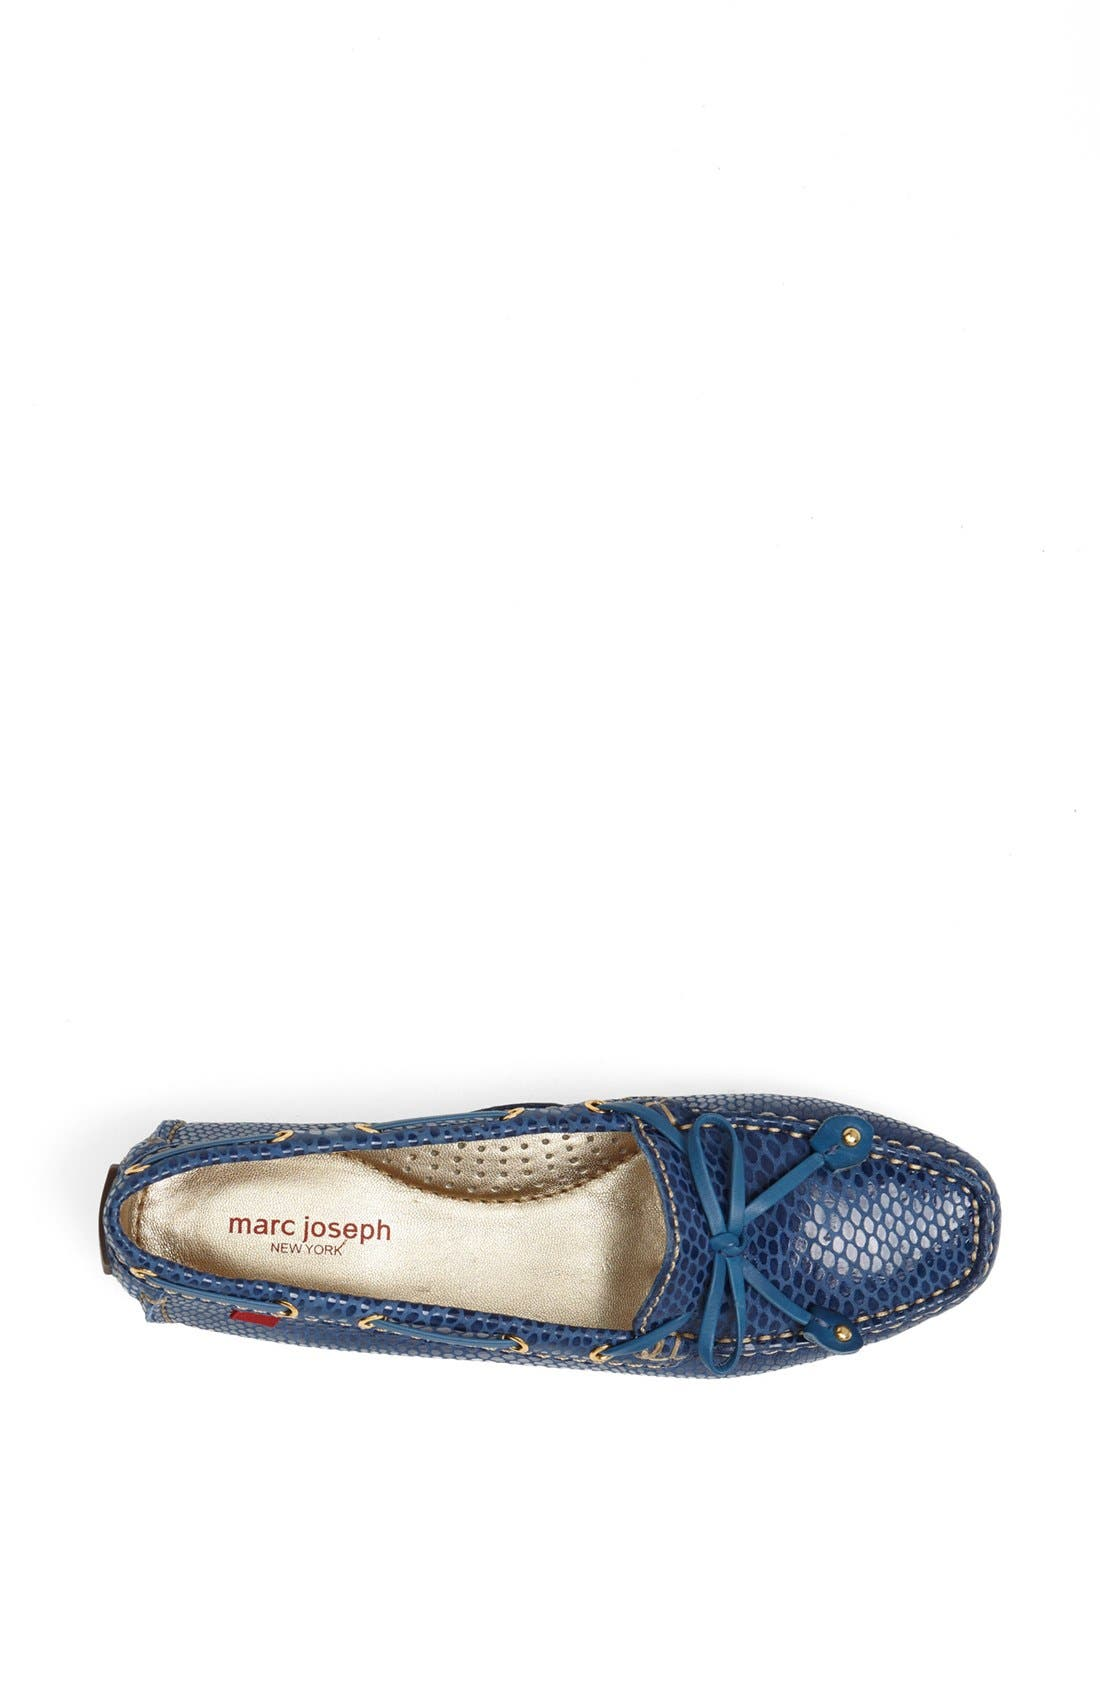 Alternate Image 3  - Marc Joseph New York 'Cypress Hill Snakes' Loafer